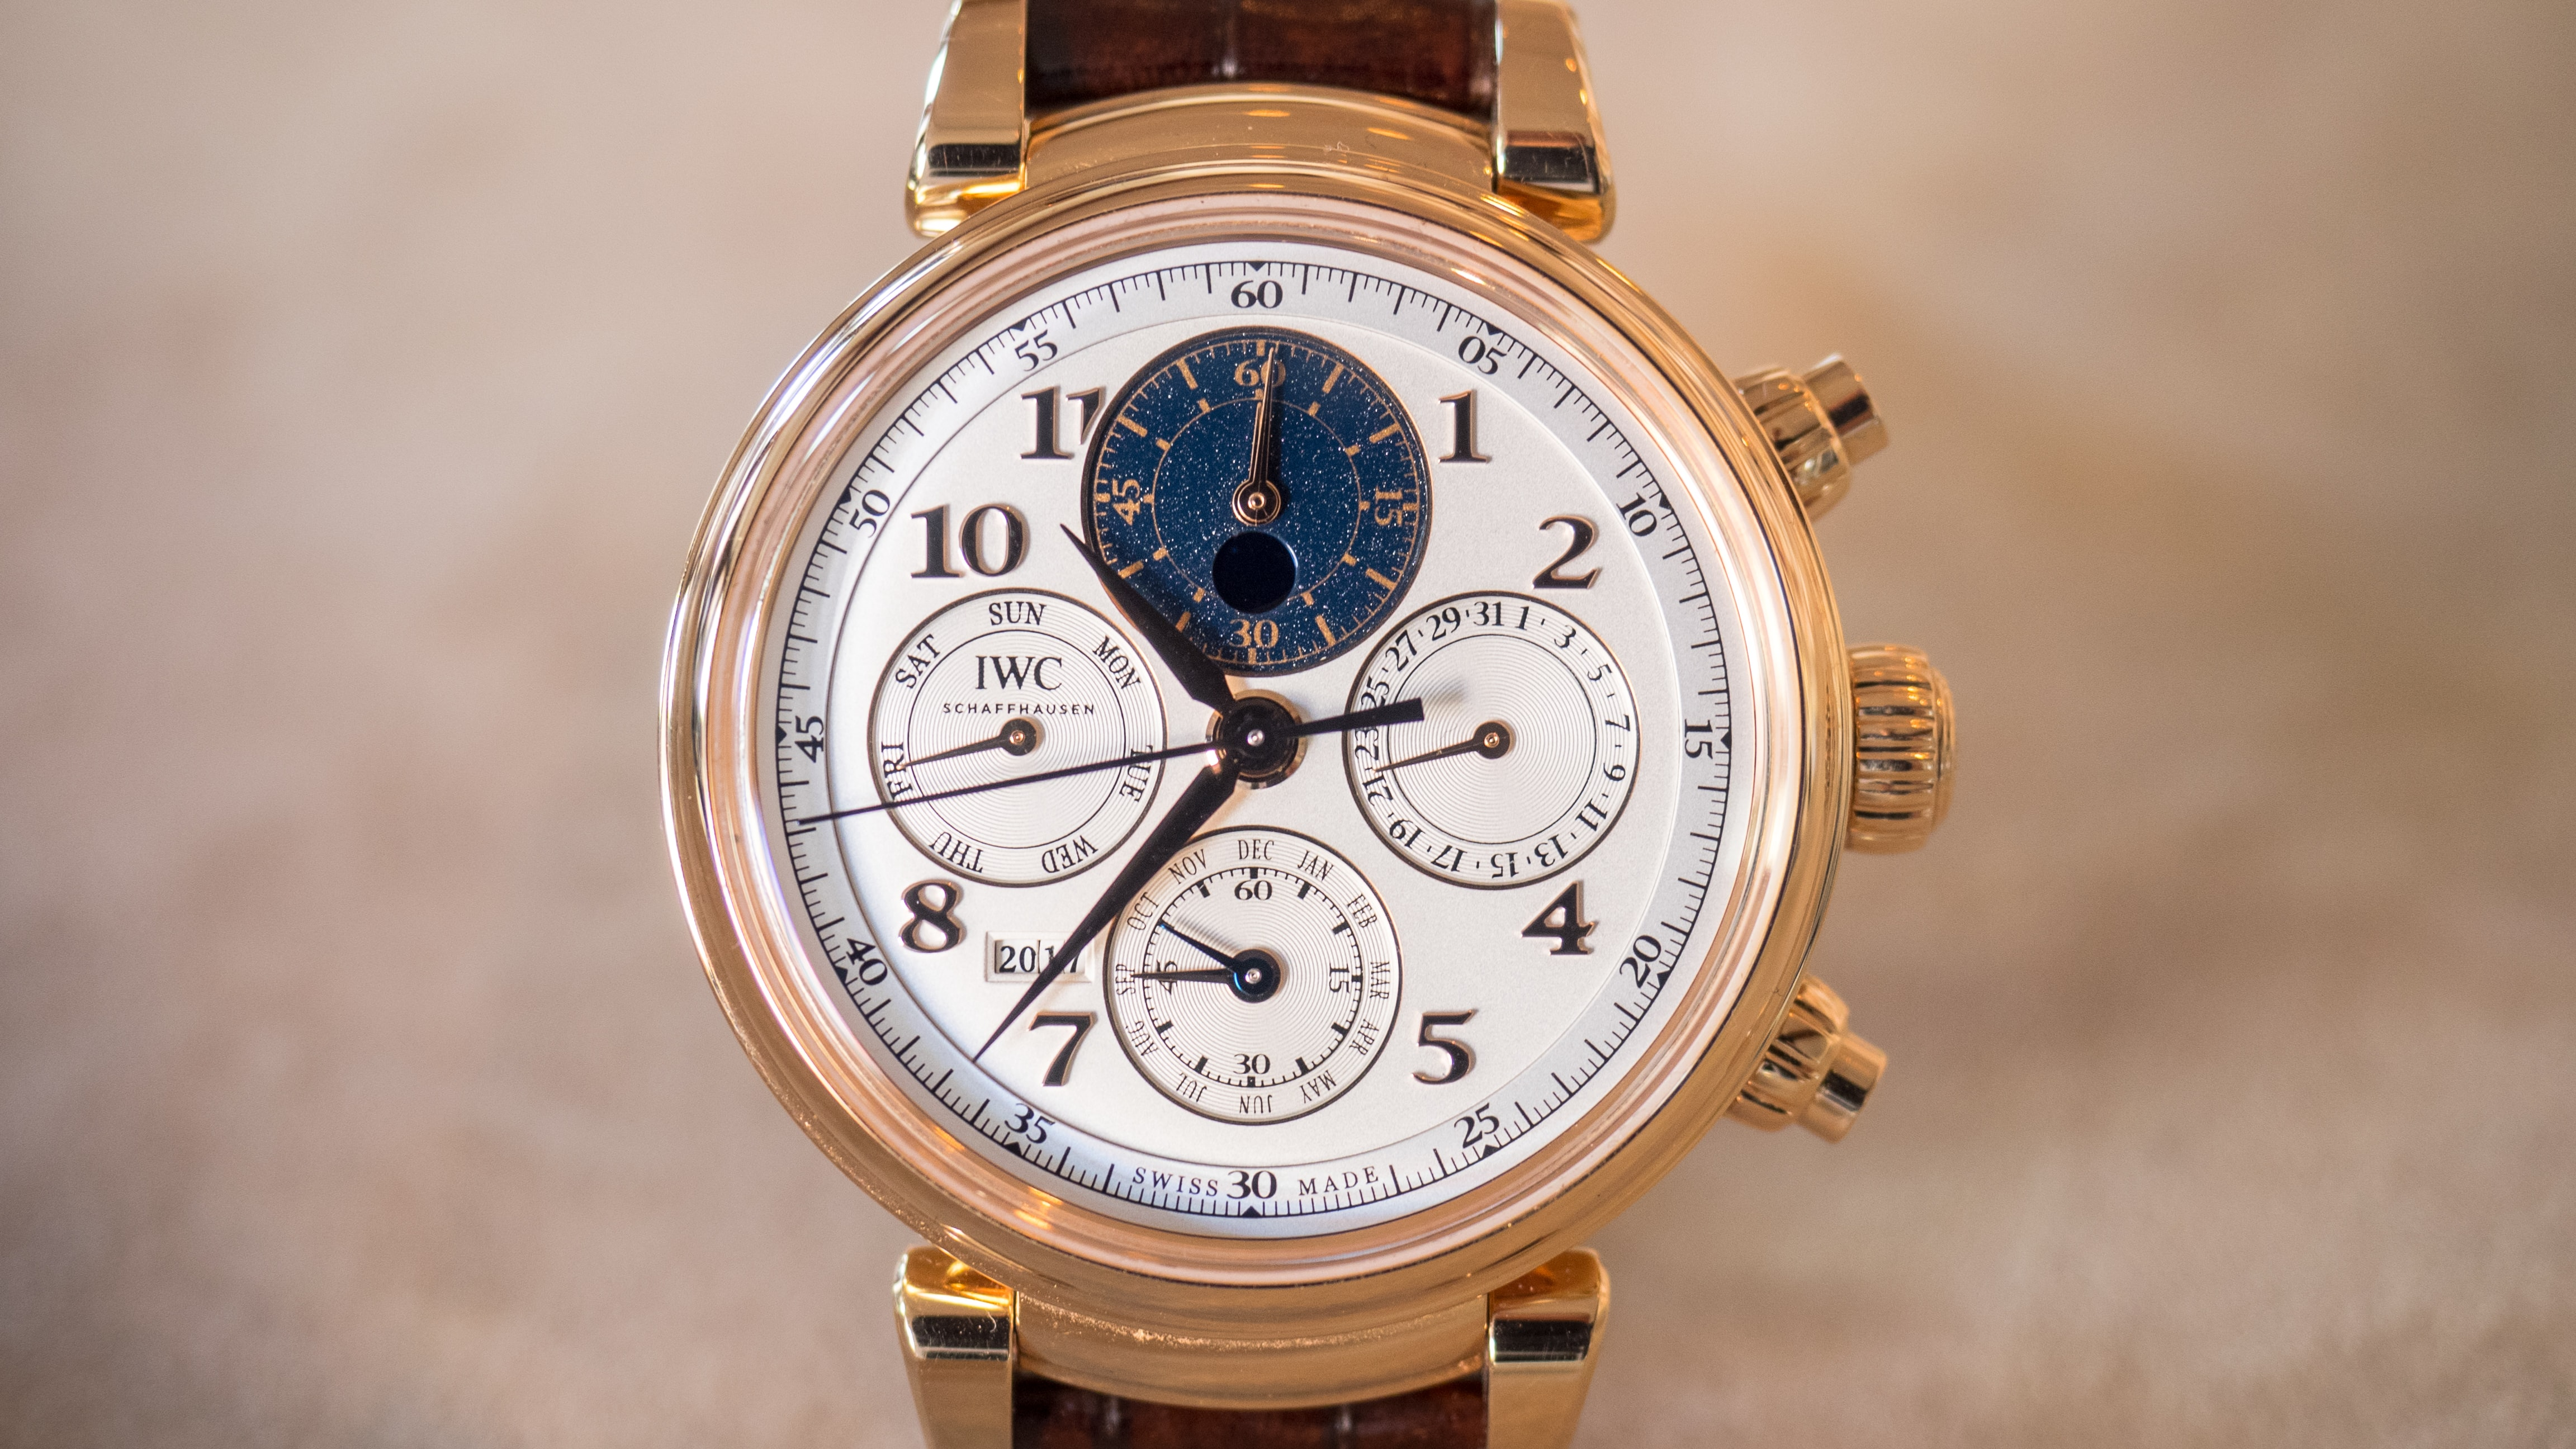 Introducing: Three New Da Vinci Watches From IWC, Including 2 Ladies' Timepieces, And A New Da Vinci Perpetual Chronograph